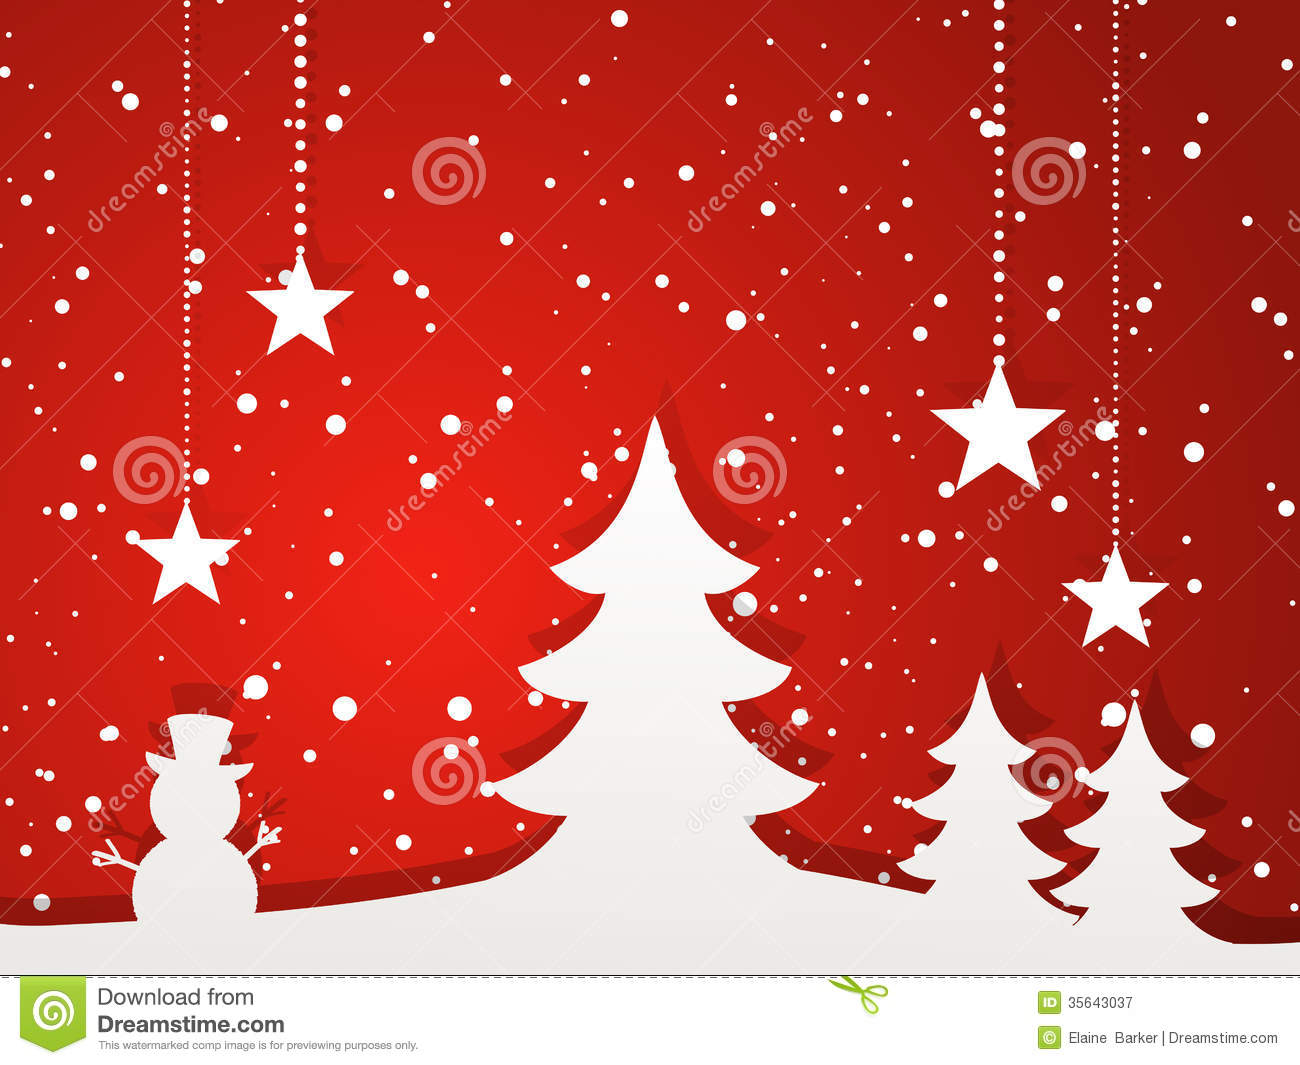 Live Winter Snow Fall Background Wallpaper Paper Christmas Tree And Winter Scene Red Stock Vector